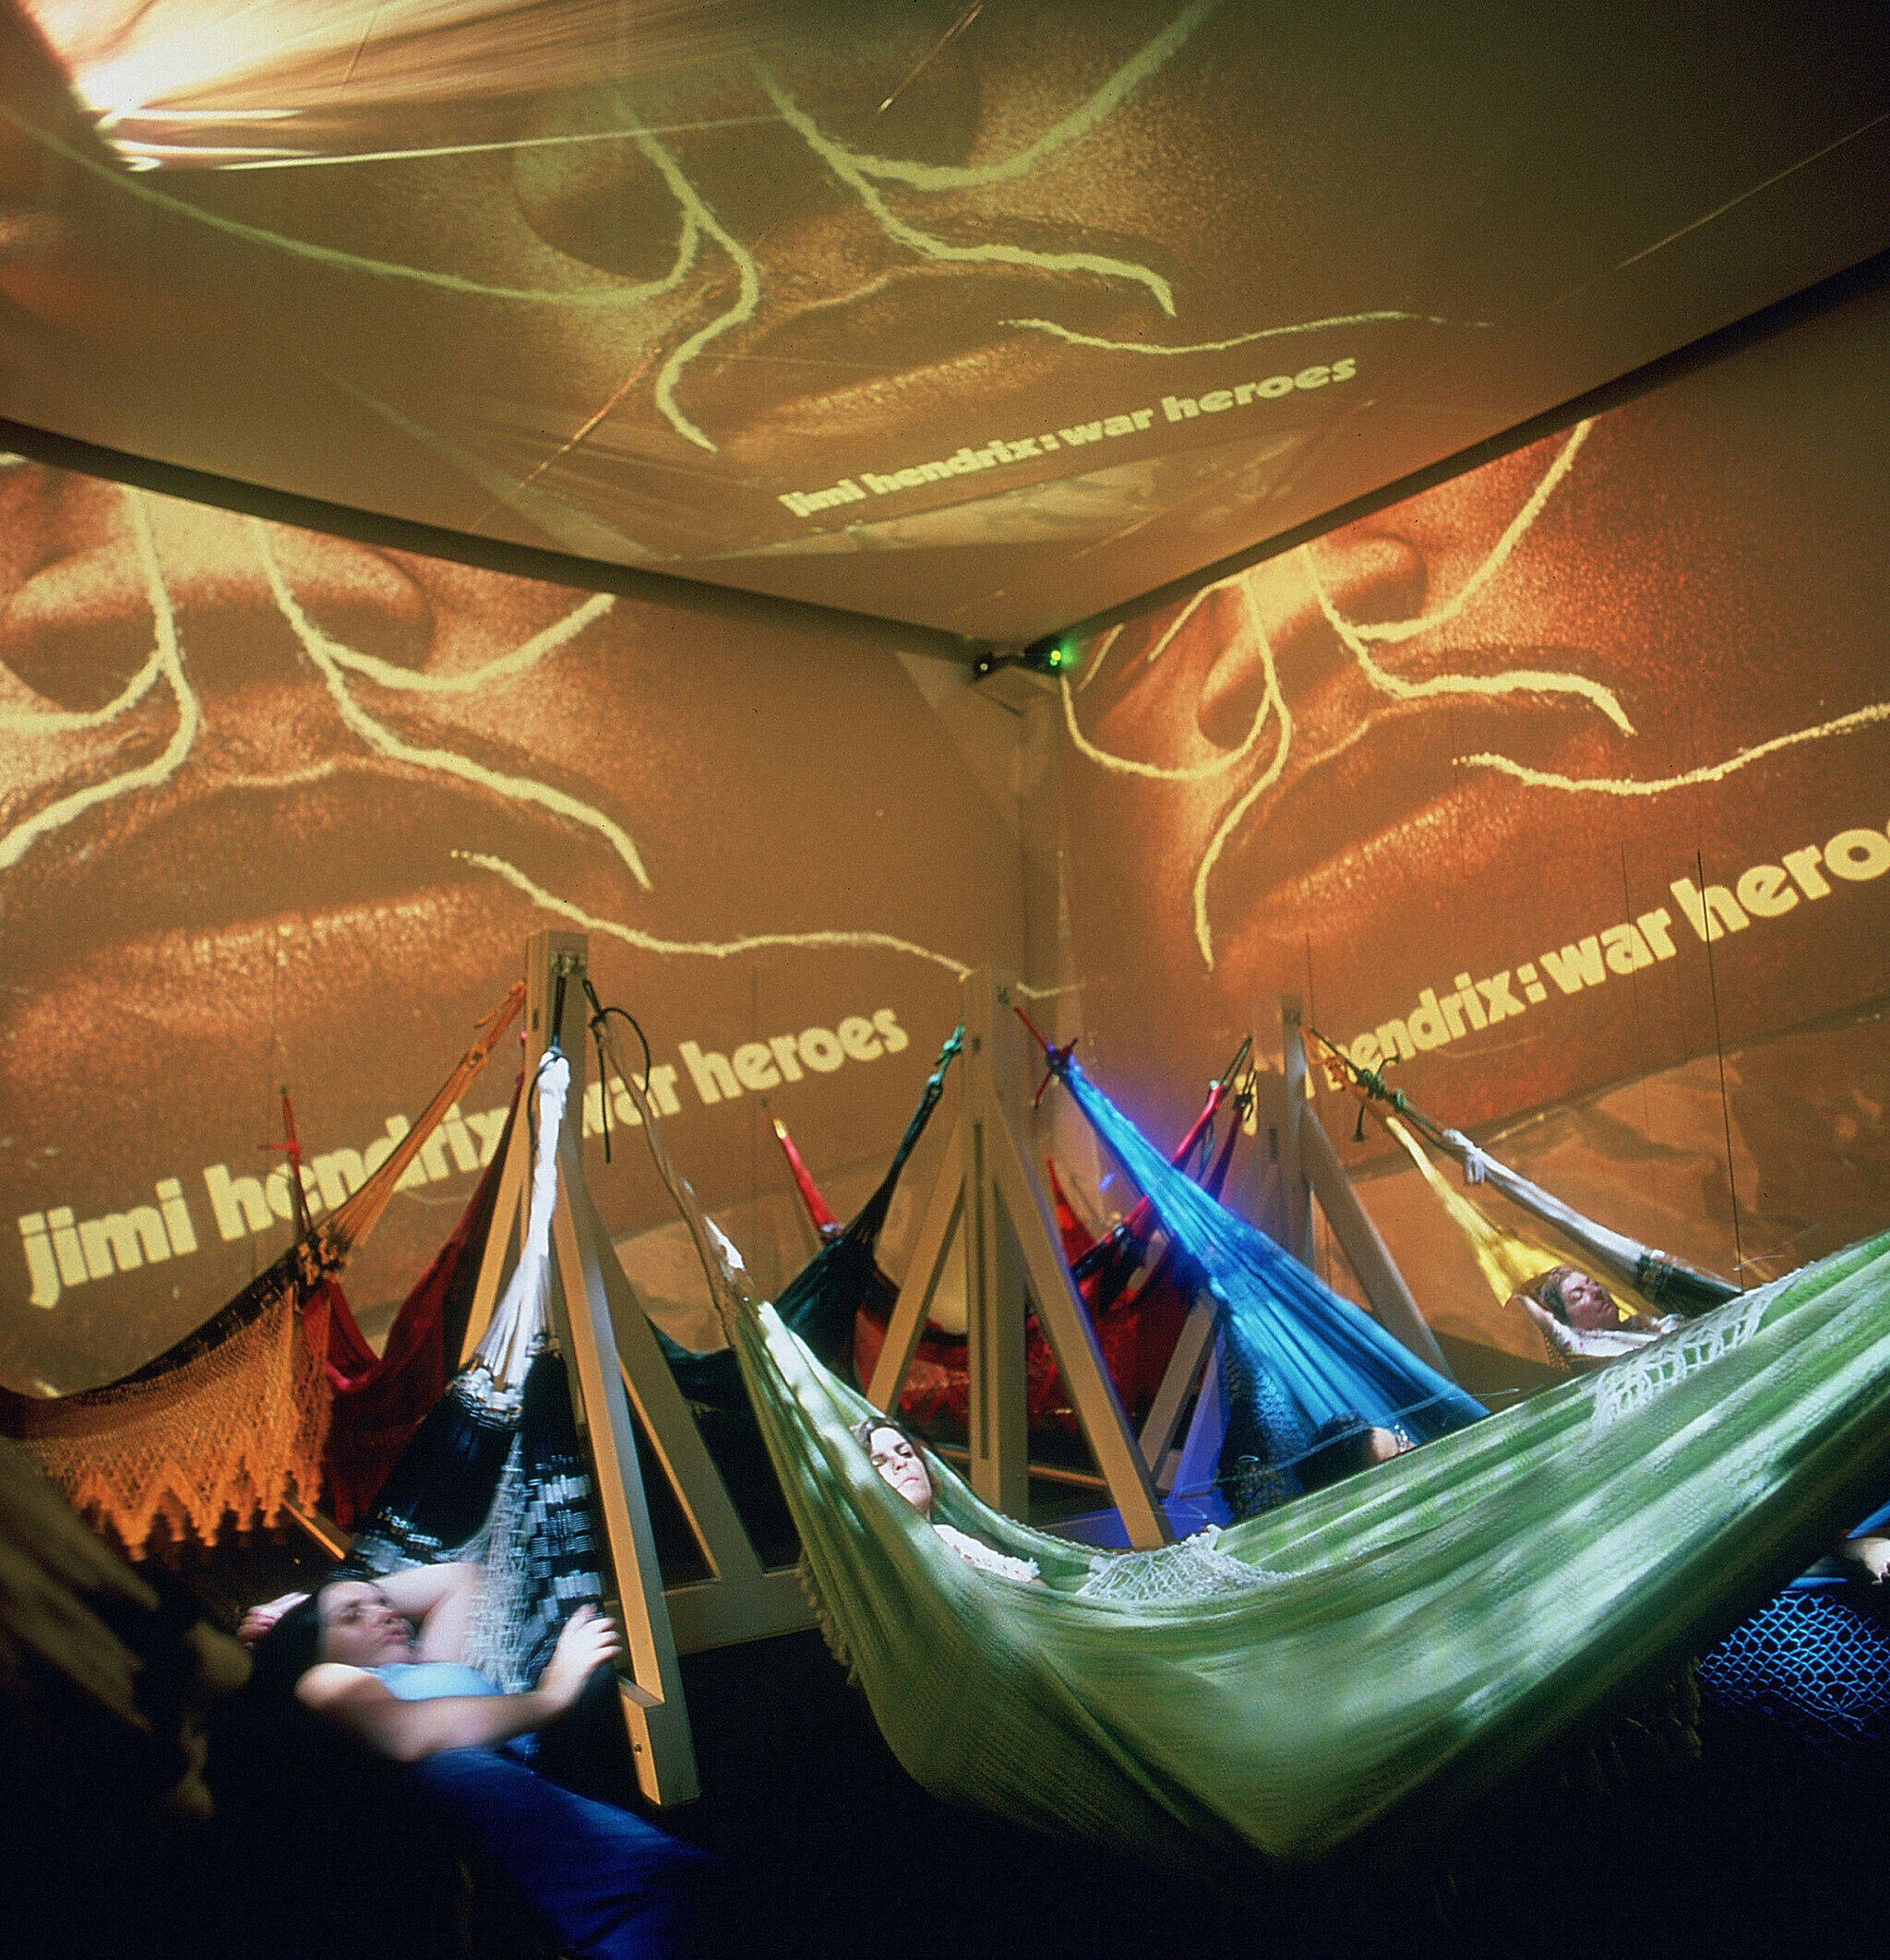 projected images on walls surrounding people in hammocks